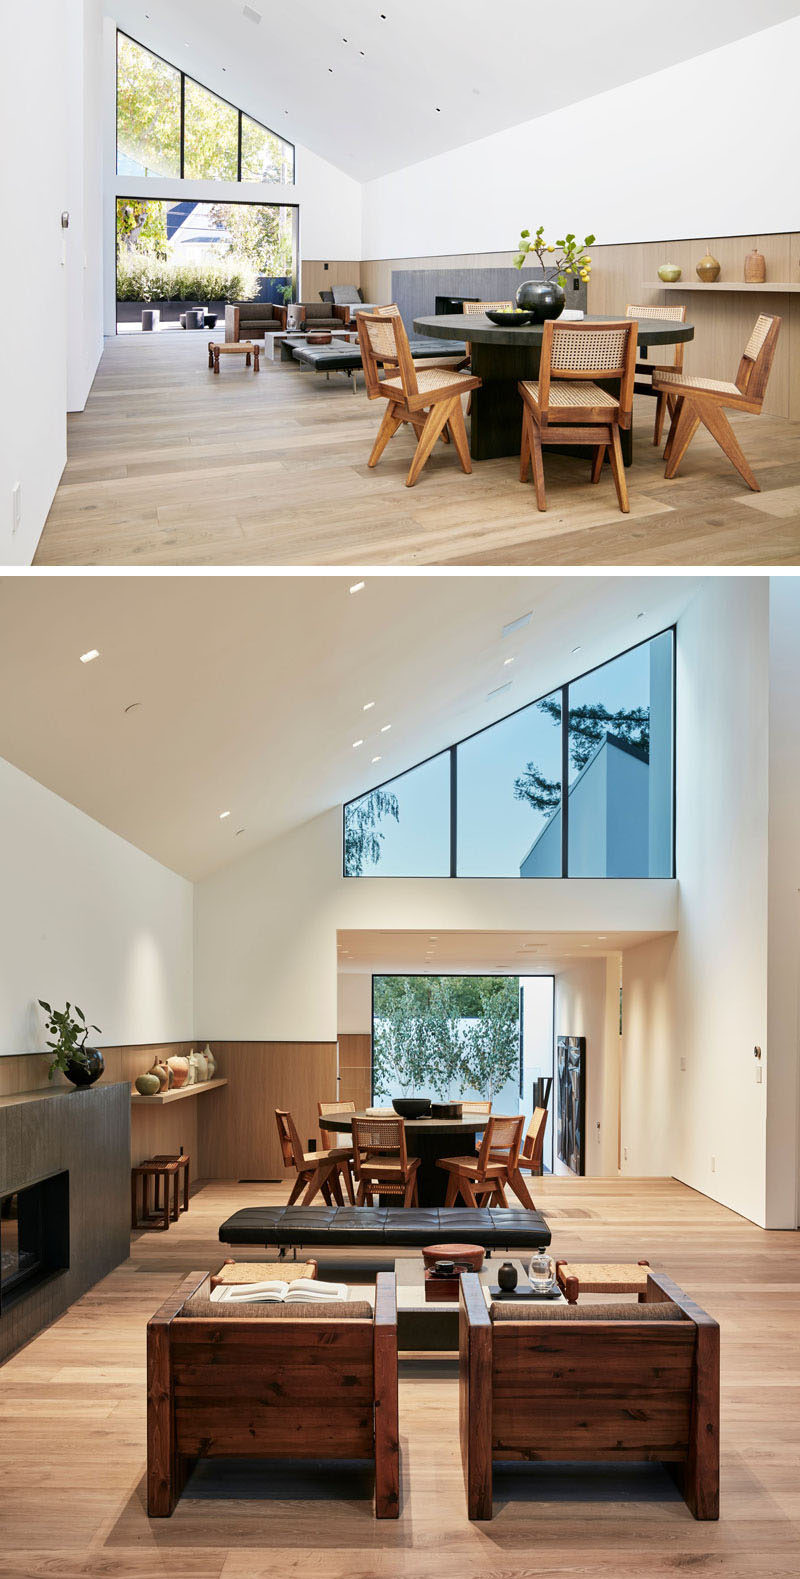 Inside this modern house, the interior is bright and lofty, with white walls, an open floor plan, and a wood accent that lines the length of the room. #ModernLivingRoom #ModernInterior